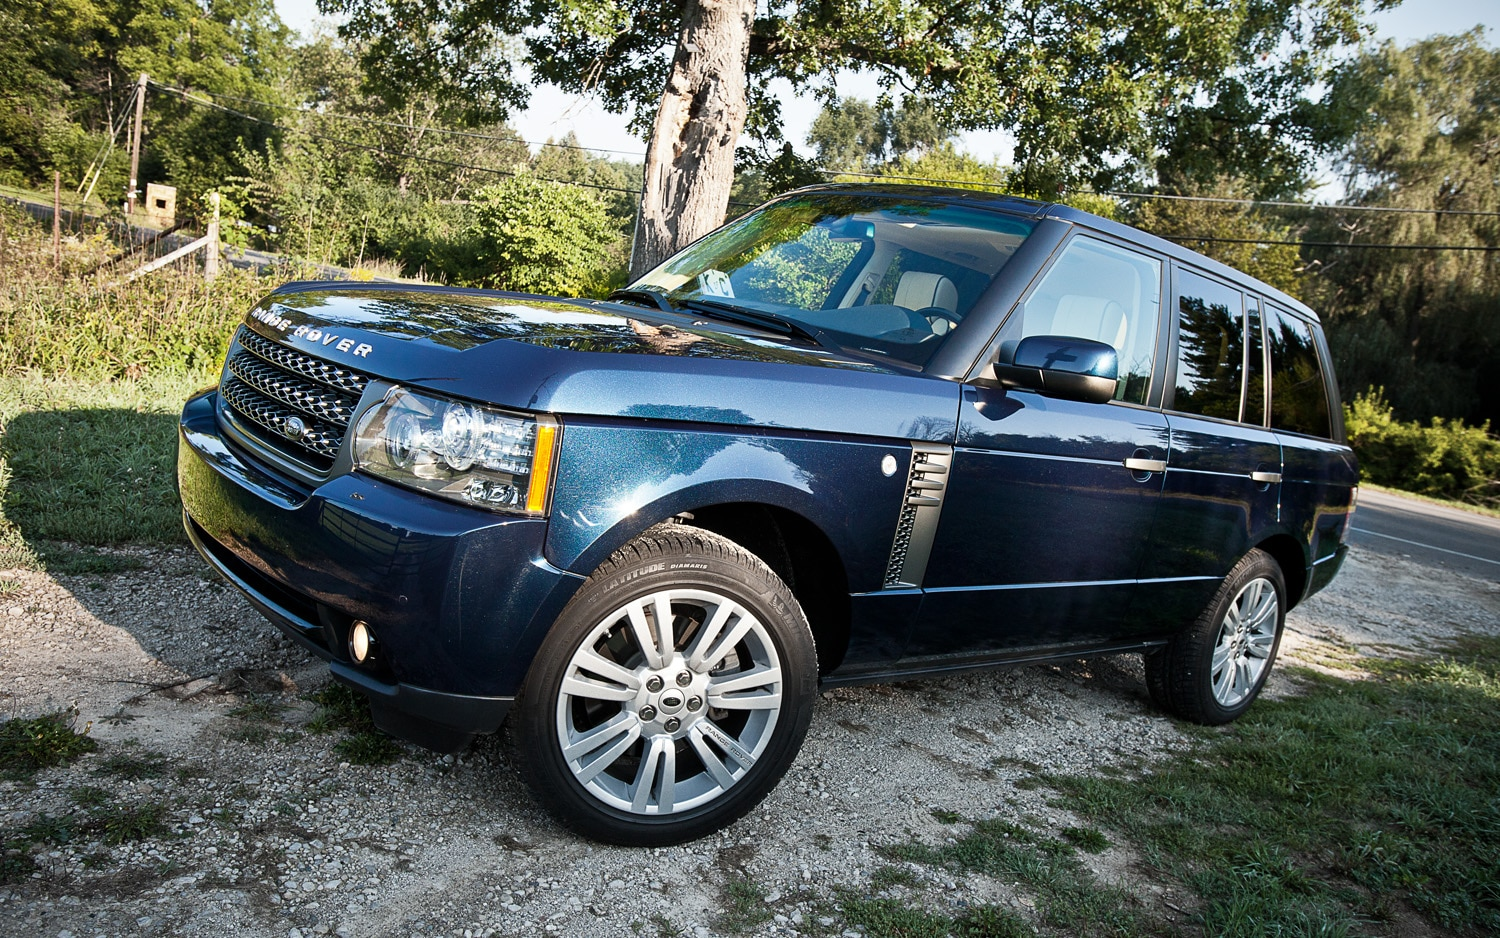 2011 Land Rover Range Rover HSE Front Left Side View1